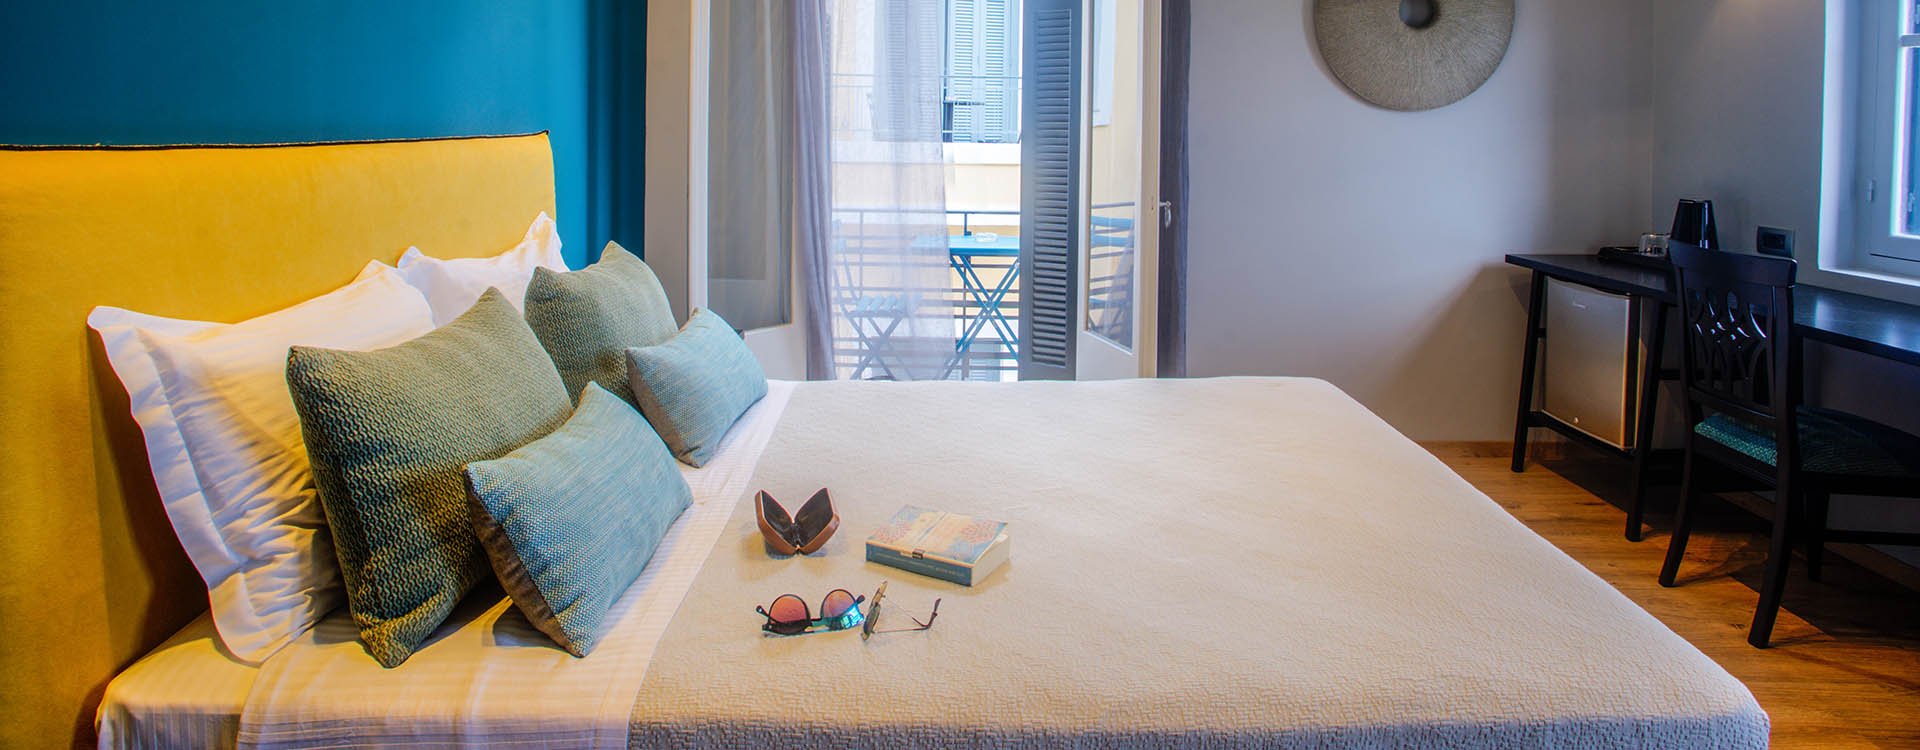 nafplio suites - aethra boutique rooms